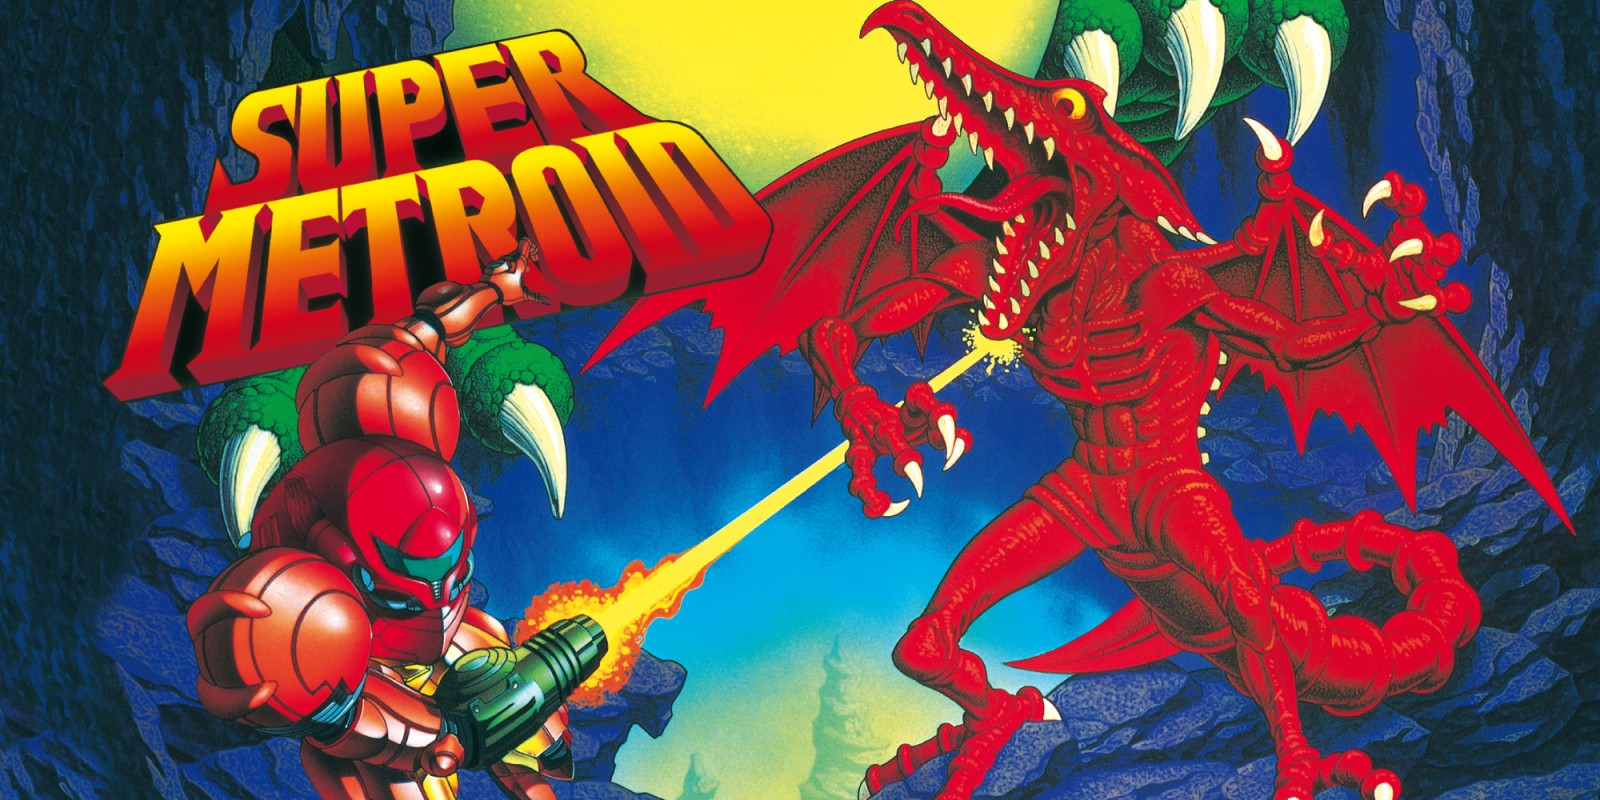 Image results for Metroid snes